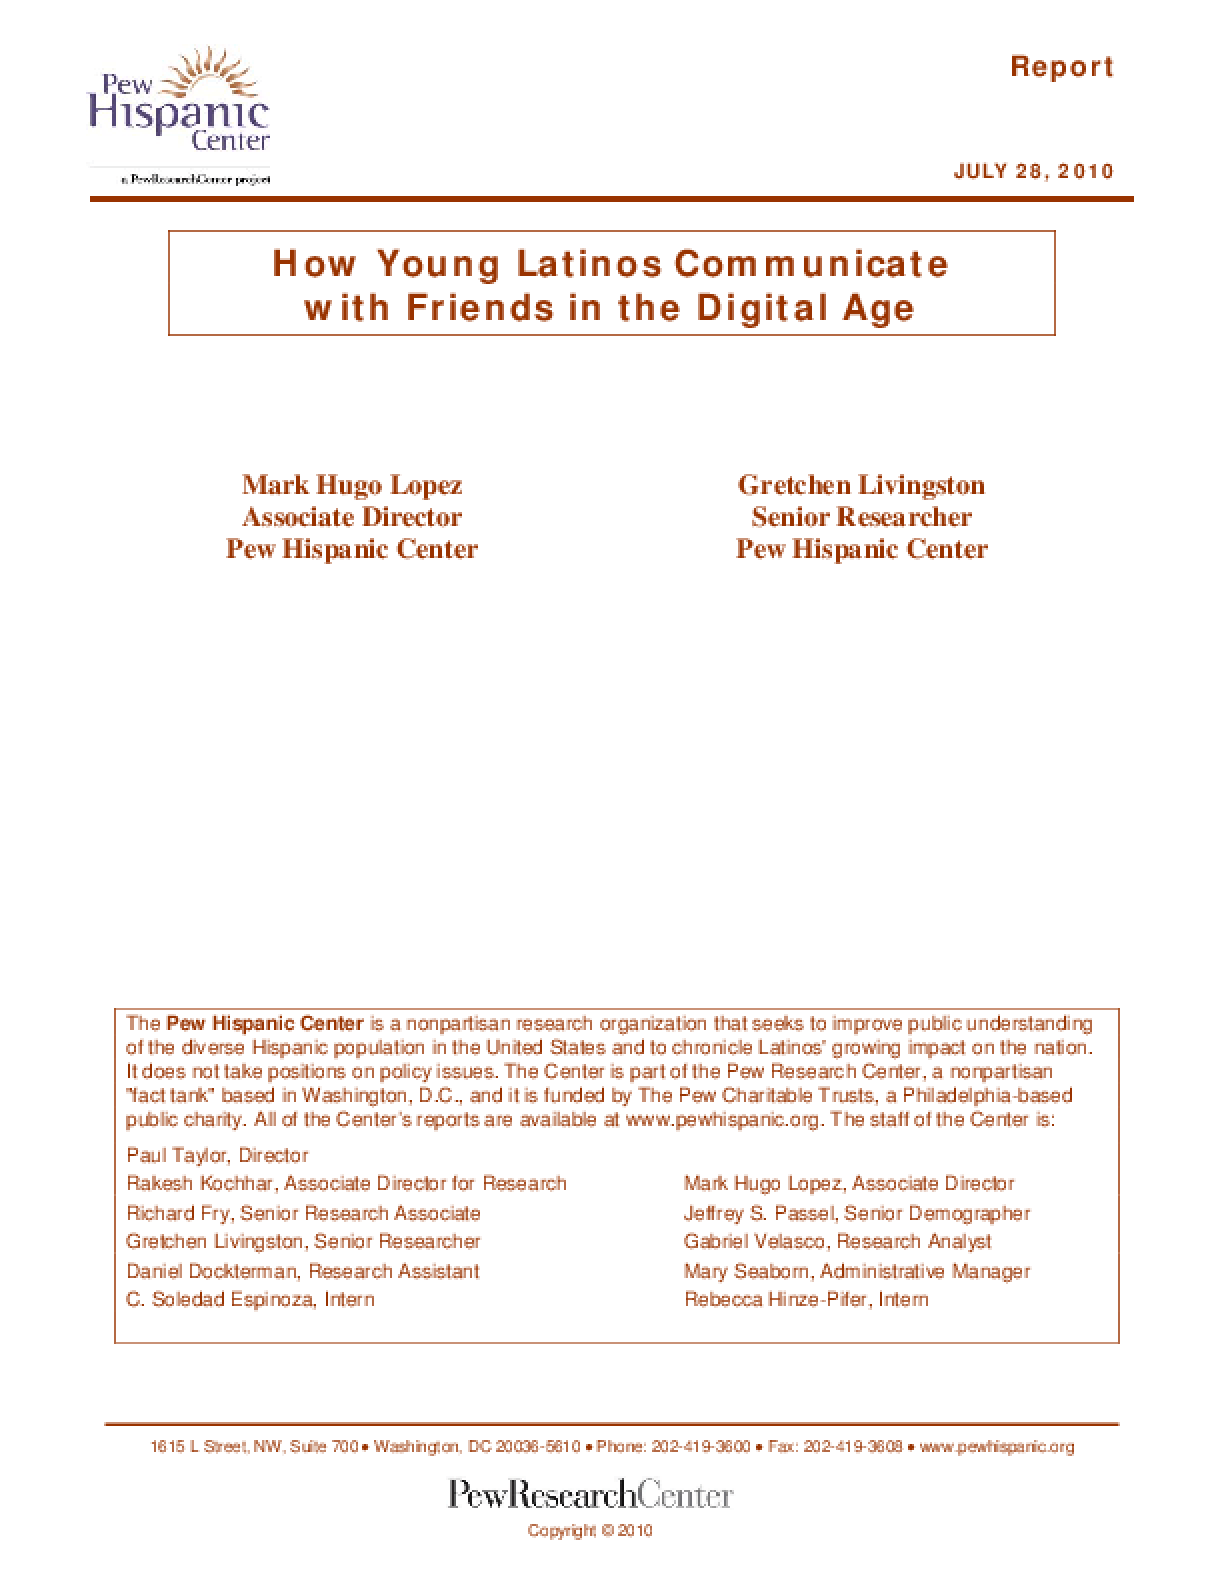 How Young Latinos Communicate With Friends in the Digital Age